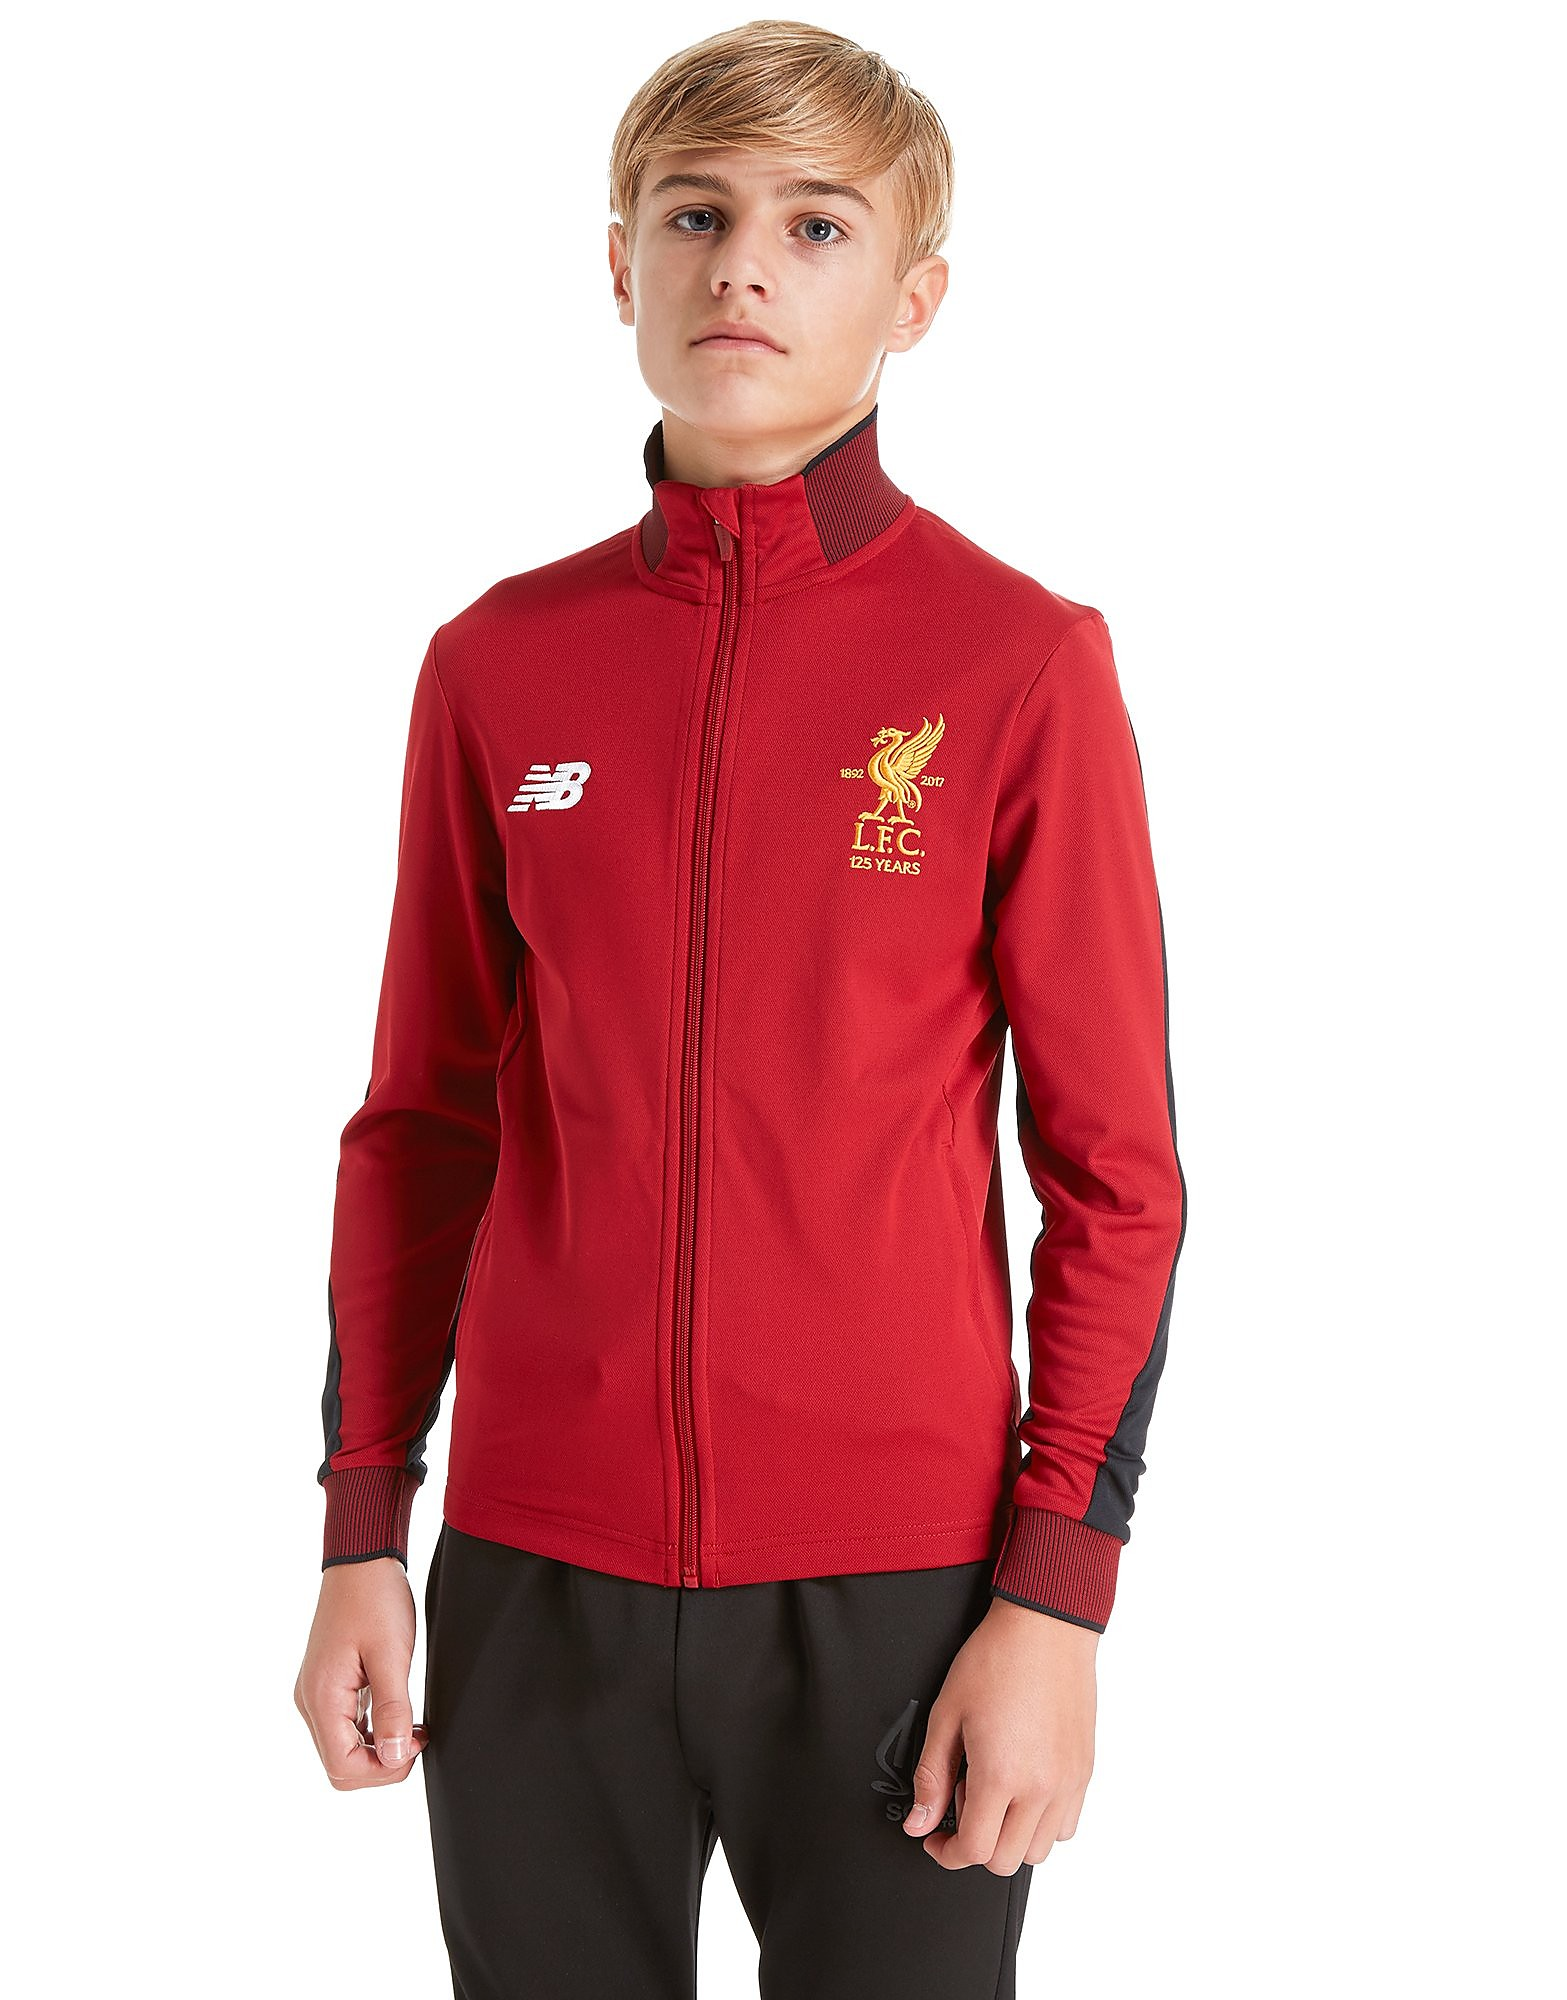 New Balance Liverpool FC 2017/18 Presentation Jacket Junior